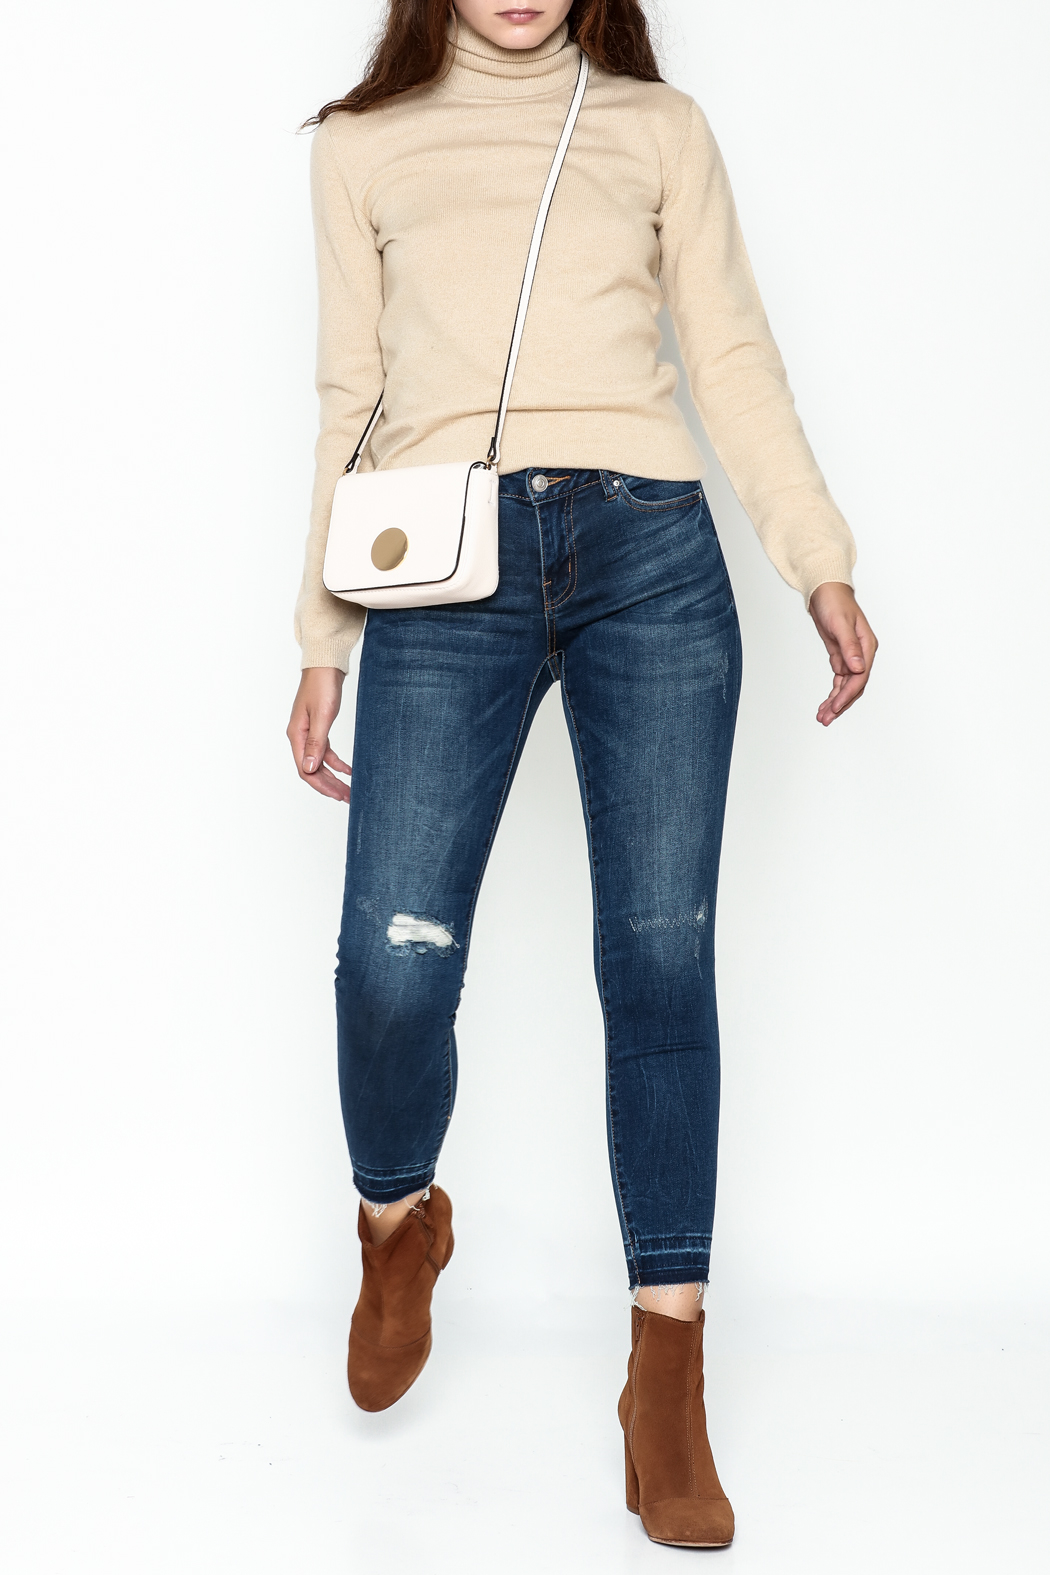 DEX Jeans Madison Distressed Cropped Jeans - Front Full Image